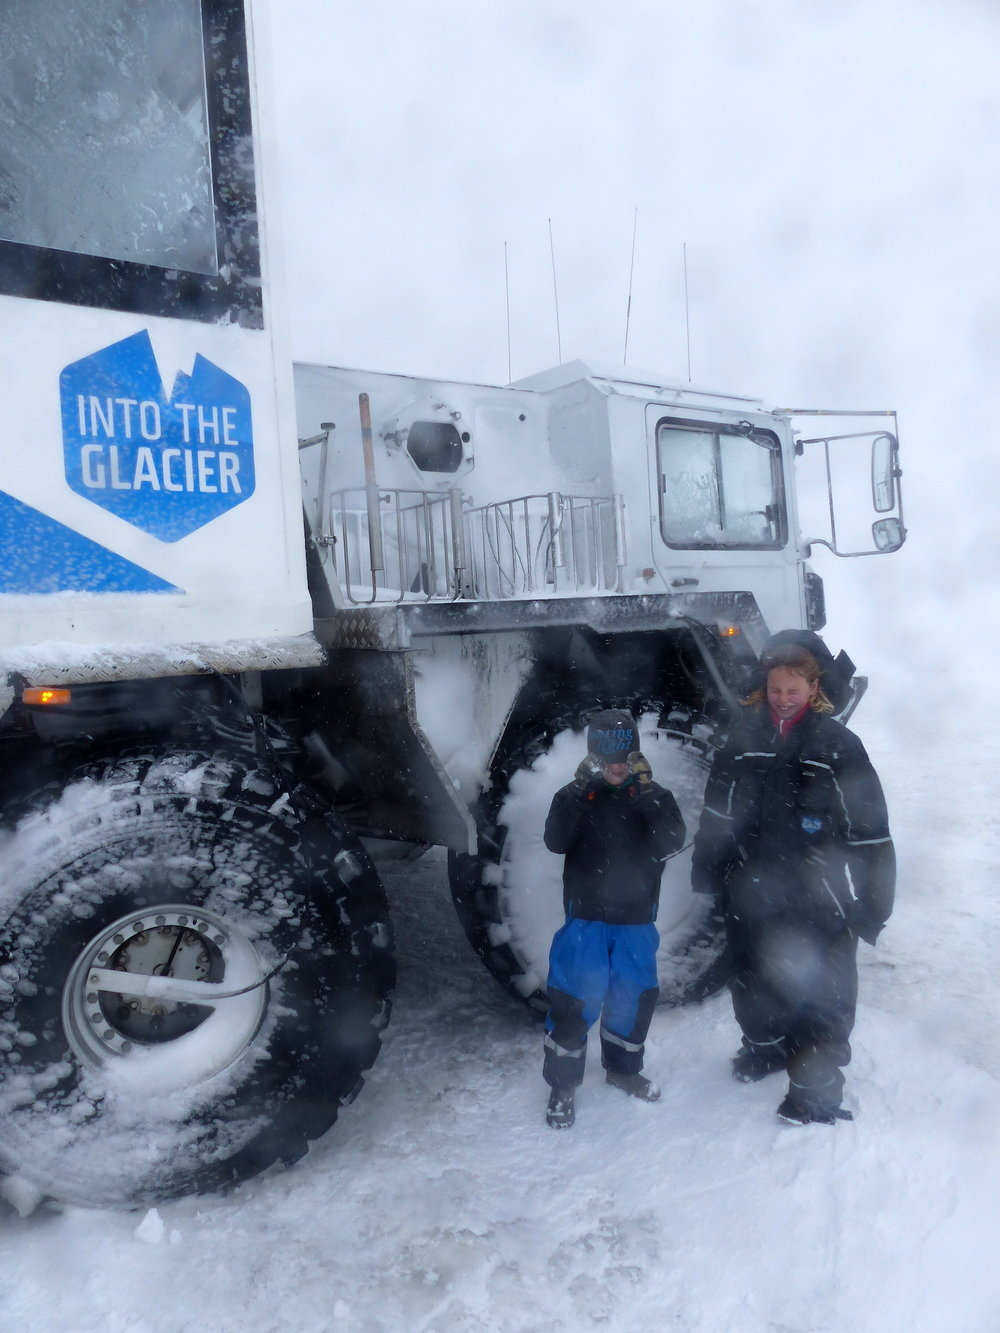 THE MONSTER TRUCK. AND MAISIE AND JOE, BRAVING A BLIZZARD!